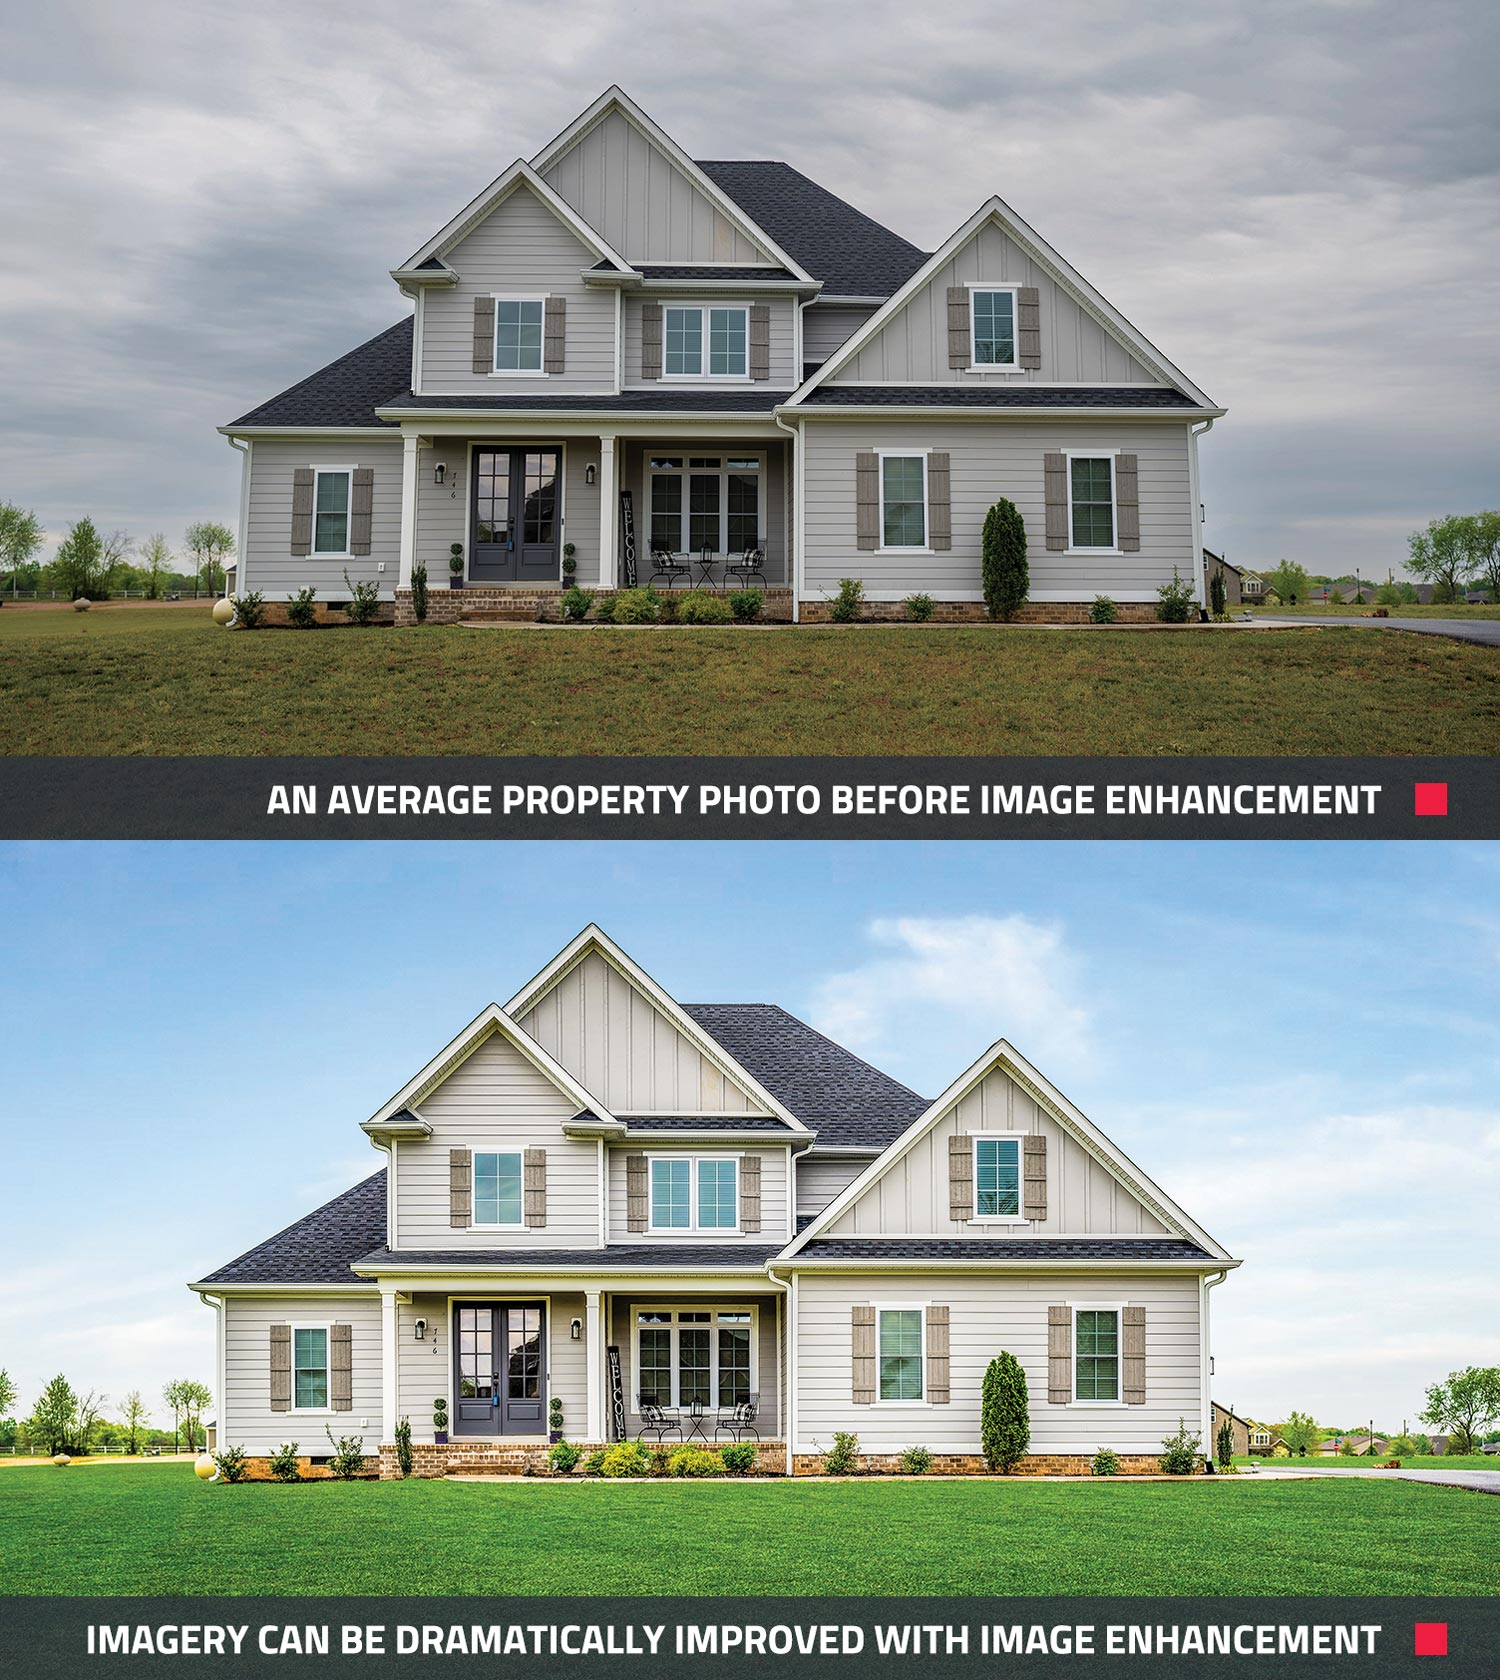 before and after of what image enhancement can do to a property in real estate